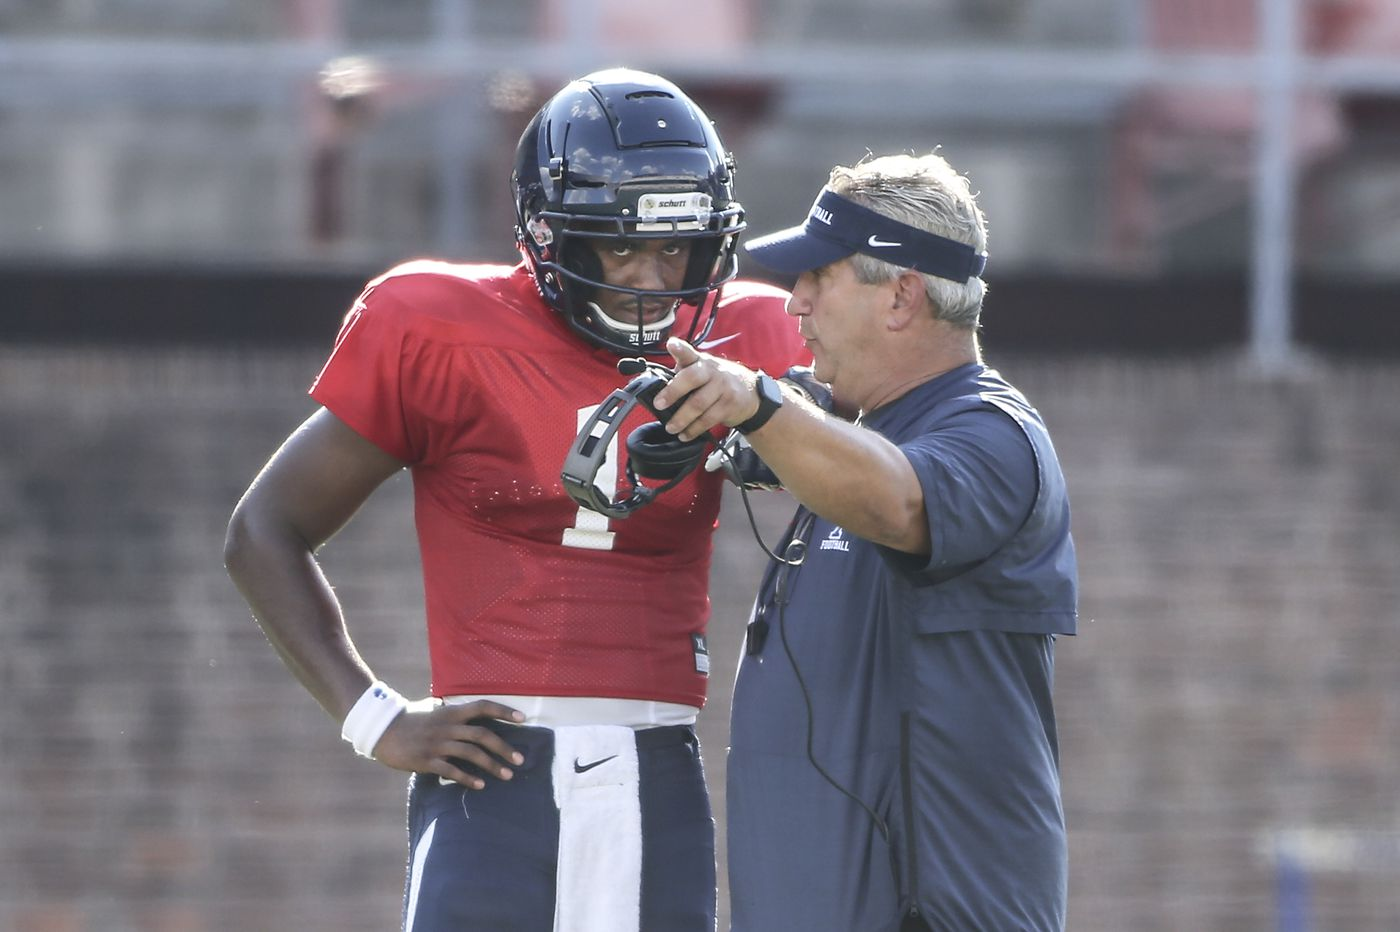 Penn opens football season against Bucknell with plan to utilize 2 QBs